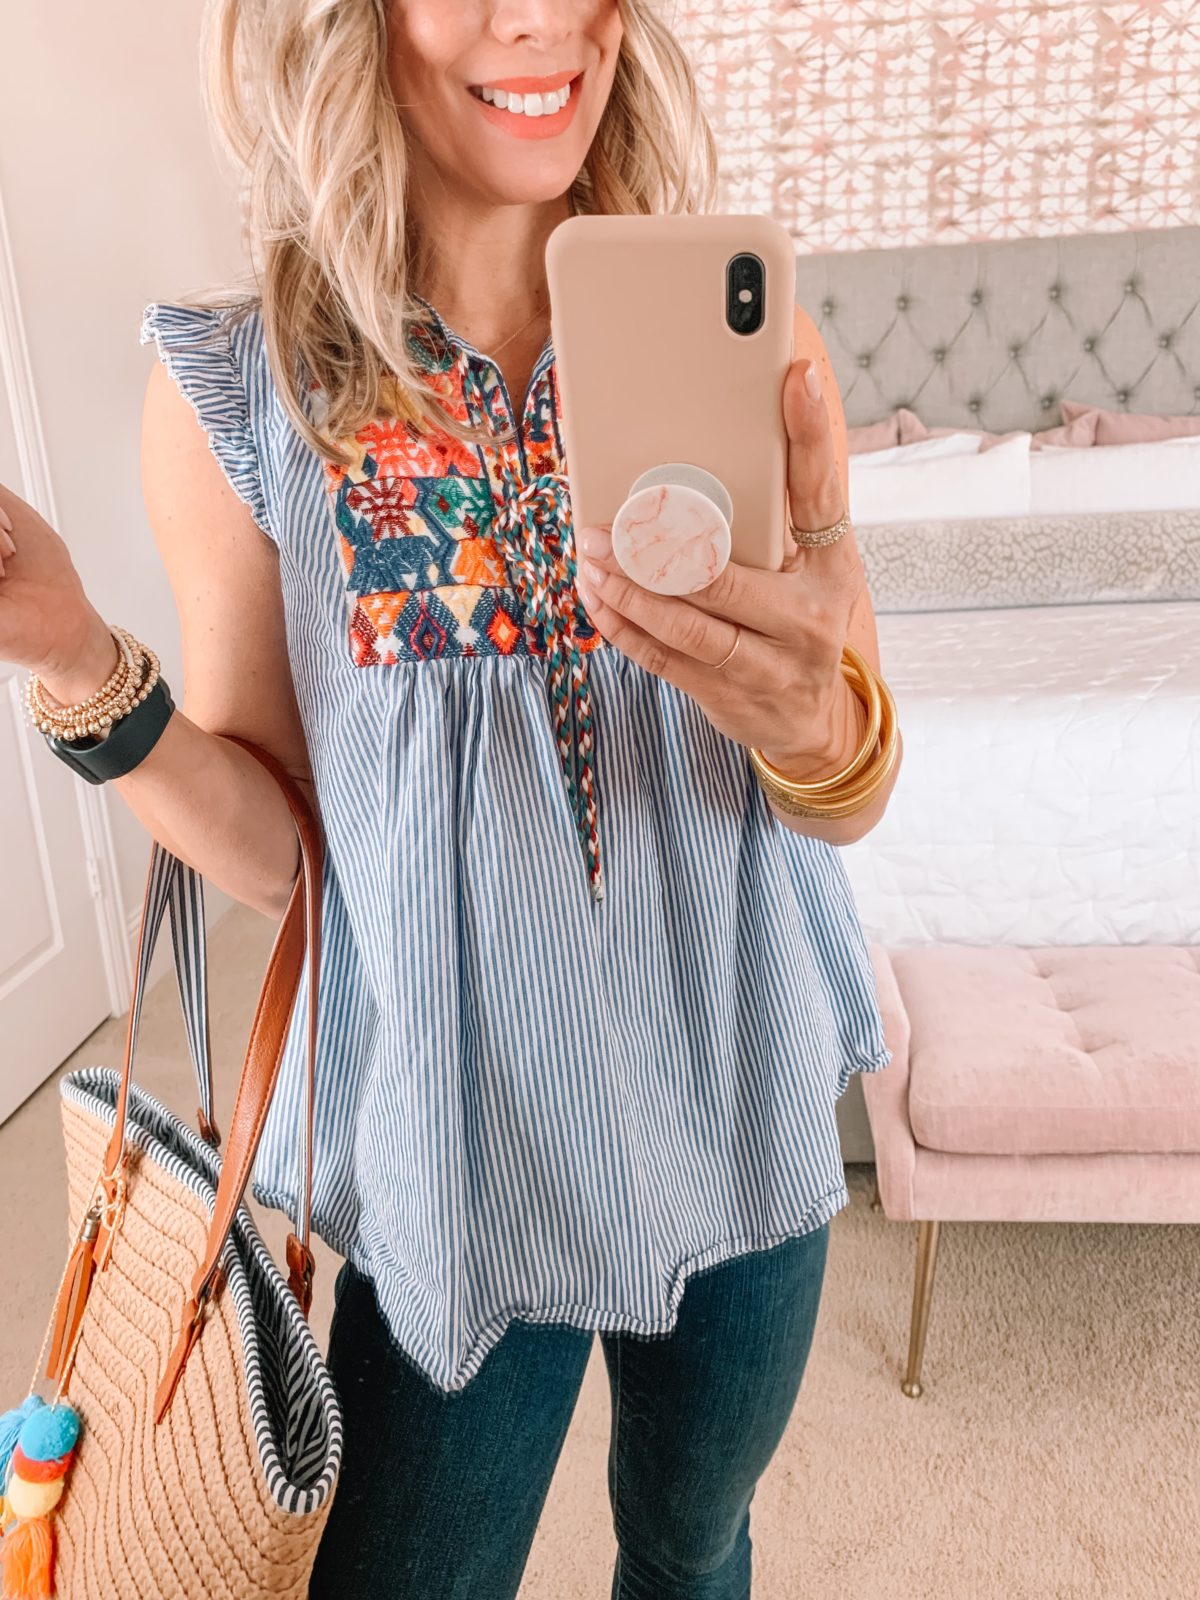 Amazon Fashion Faves, Embroidered Top, Jeans, Tote Bag with Tassel